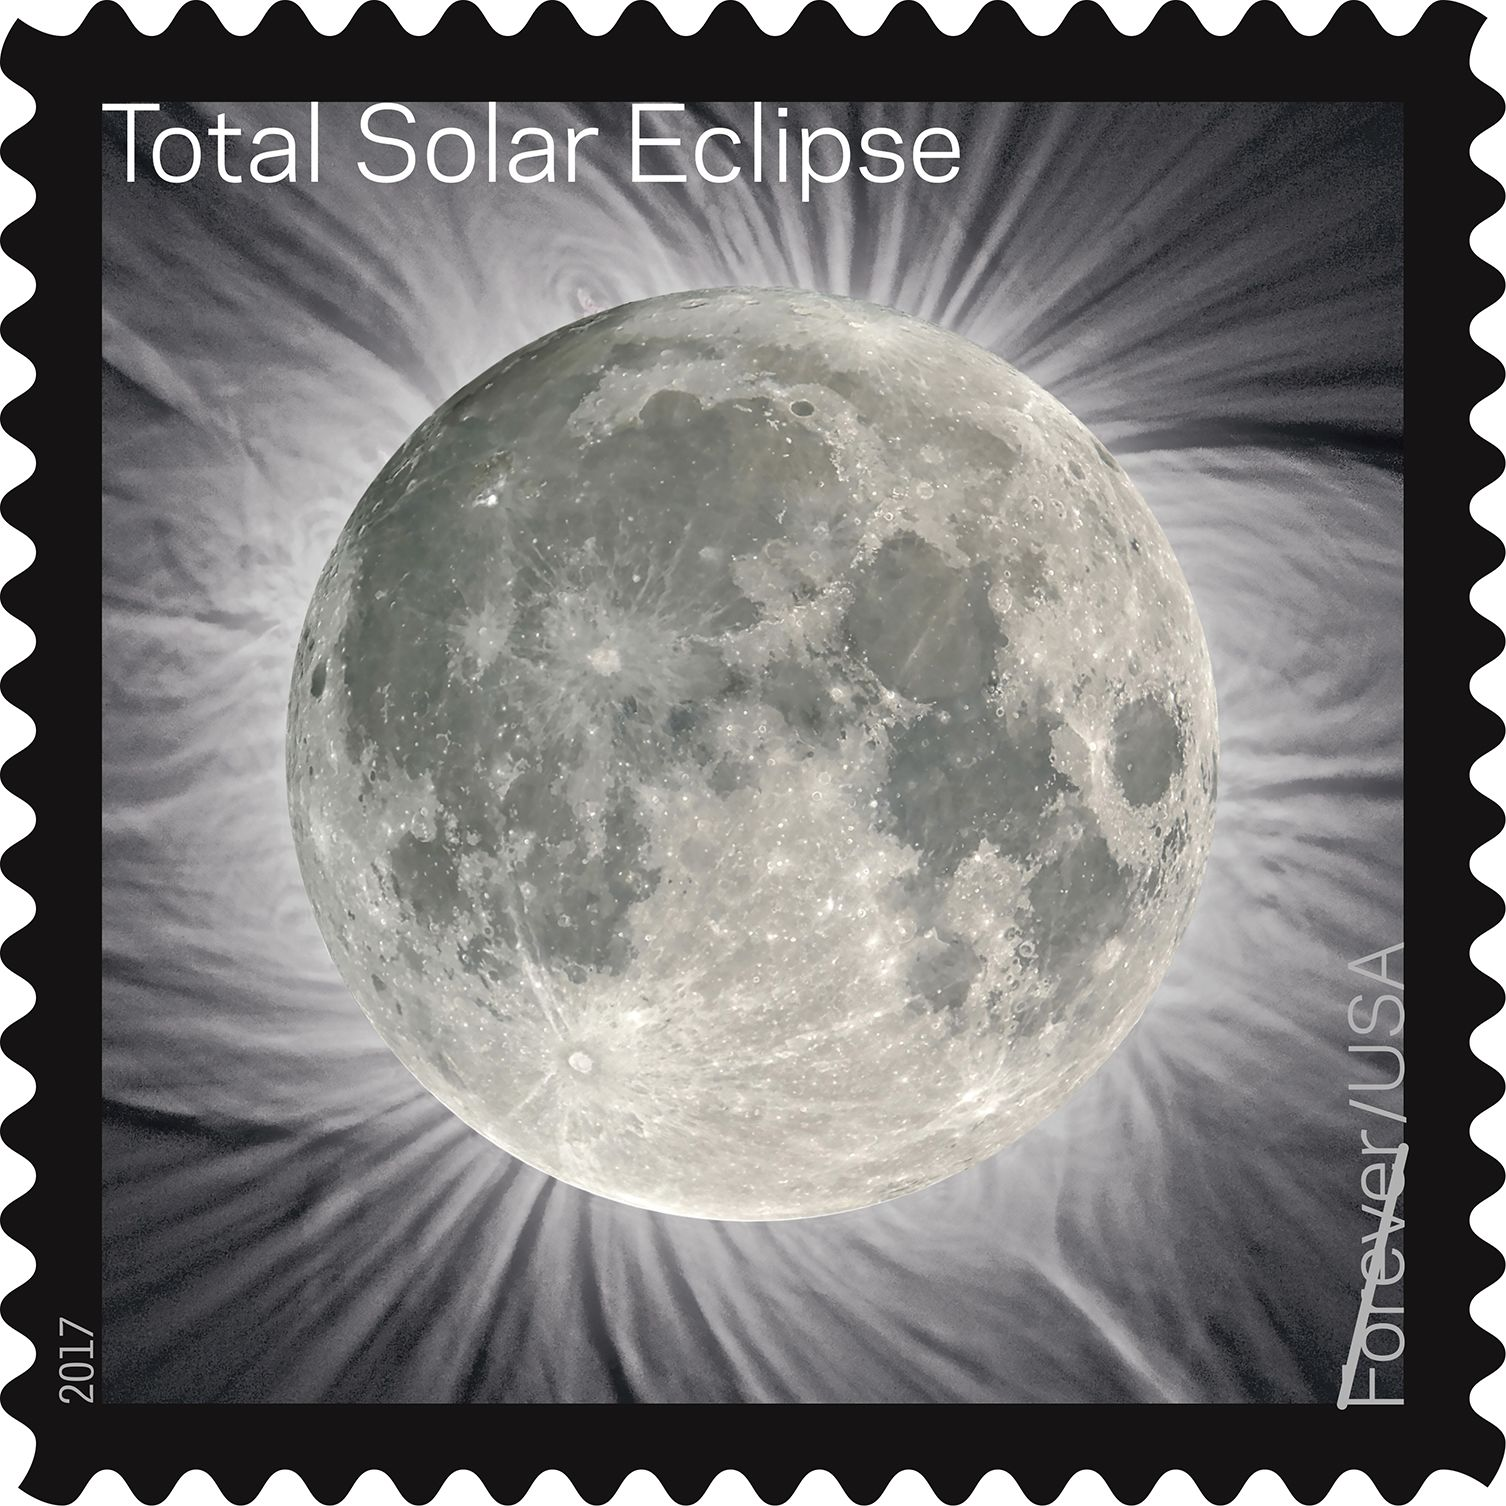 USPS Releases Ground-Breaking Total Eclipse of the Sun Forever Stamp